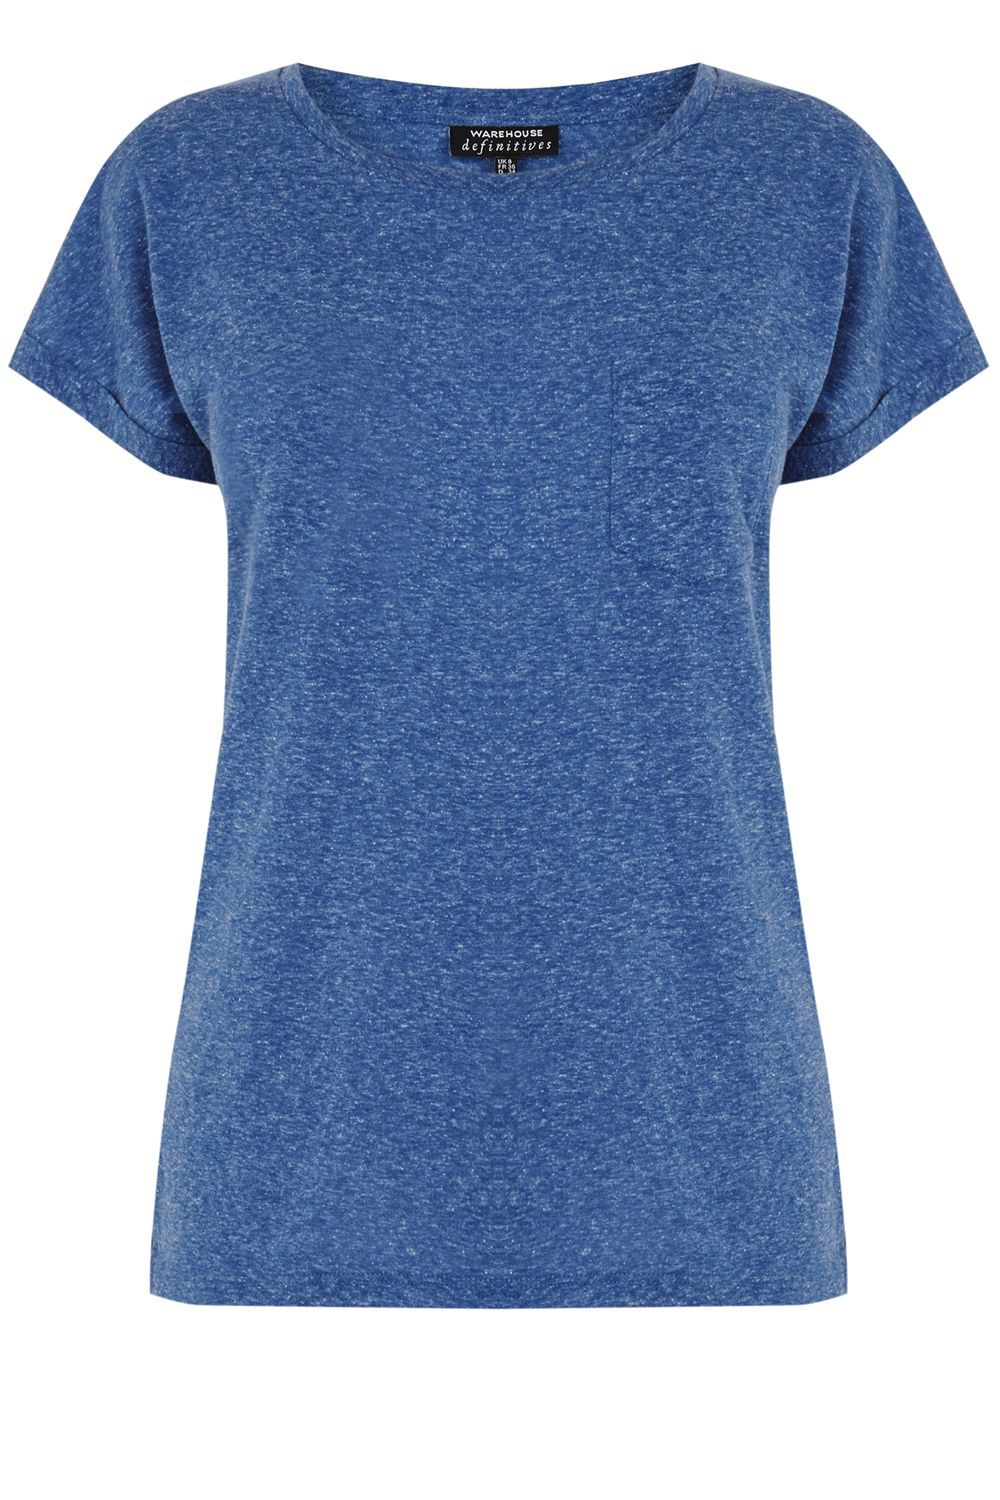 Neppy Pocket T Shirt, Blue - pattern: plain; style: t-shirt; predominant colour: navy; occasions: casual; length: standard; fibres: cotton - mix; fit: body skimming; neckline: crew; sleeve length: short sleeve; sleeve style: standard; pattern type: fabric; texture group: jersey - stretchy/drapey; season: s/s 2016; wardrobe: basic